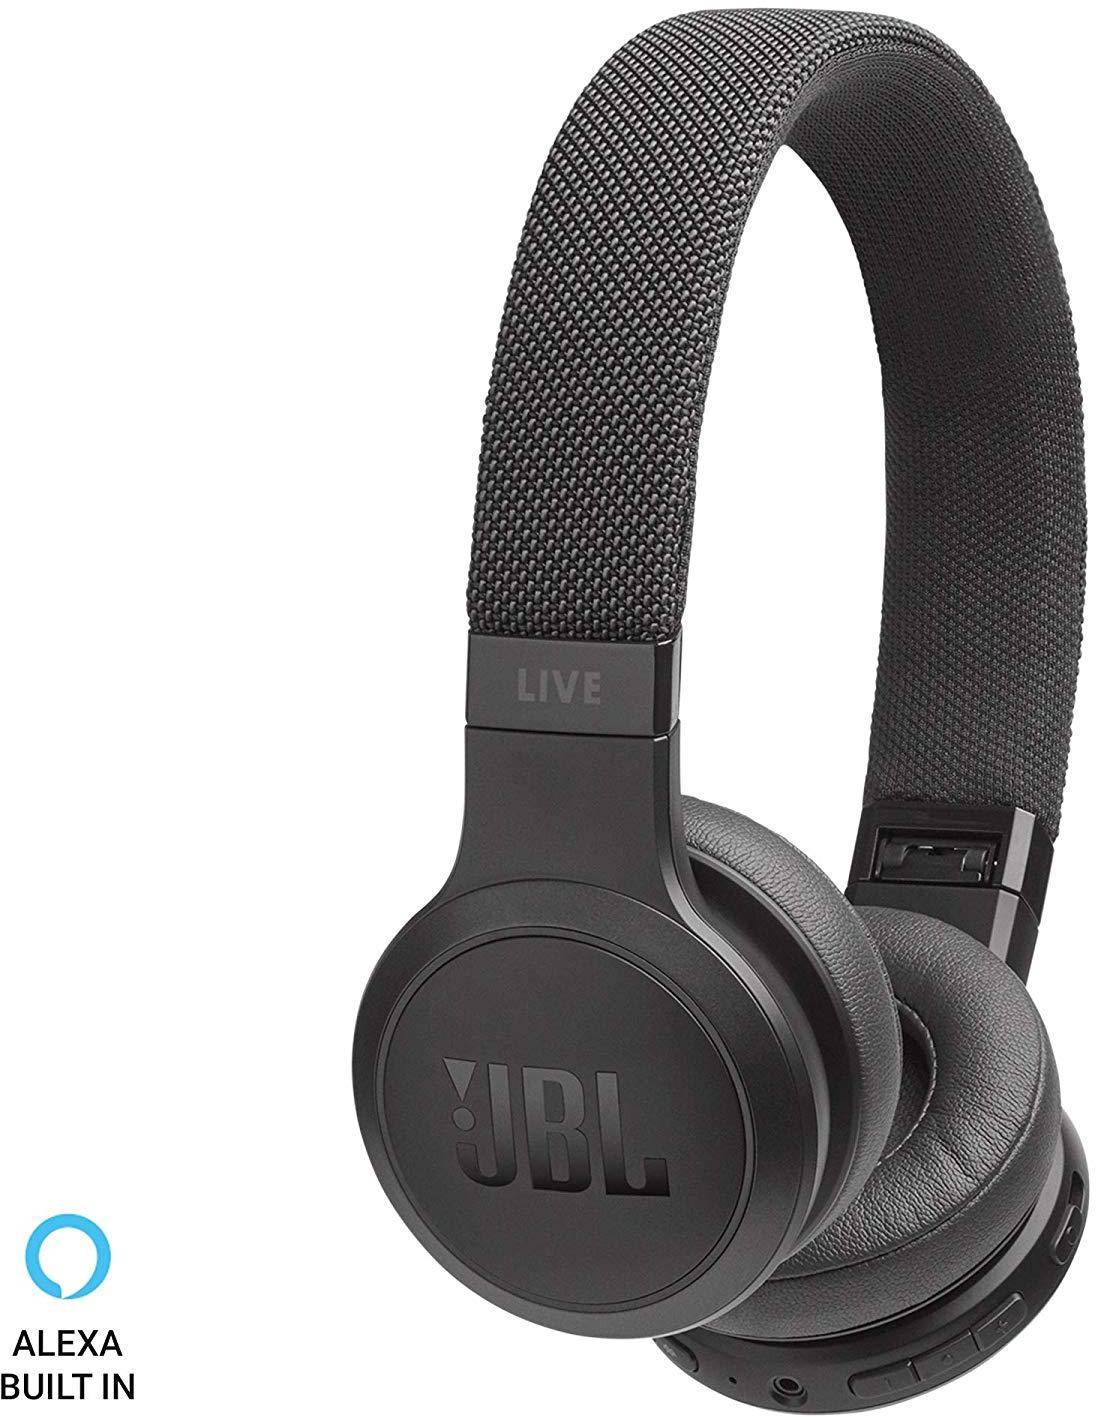 JBL Live 400BT Wireless Bluetooth On-Ear Voice Enabled Headphones With Alexa zoom image